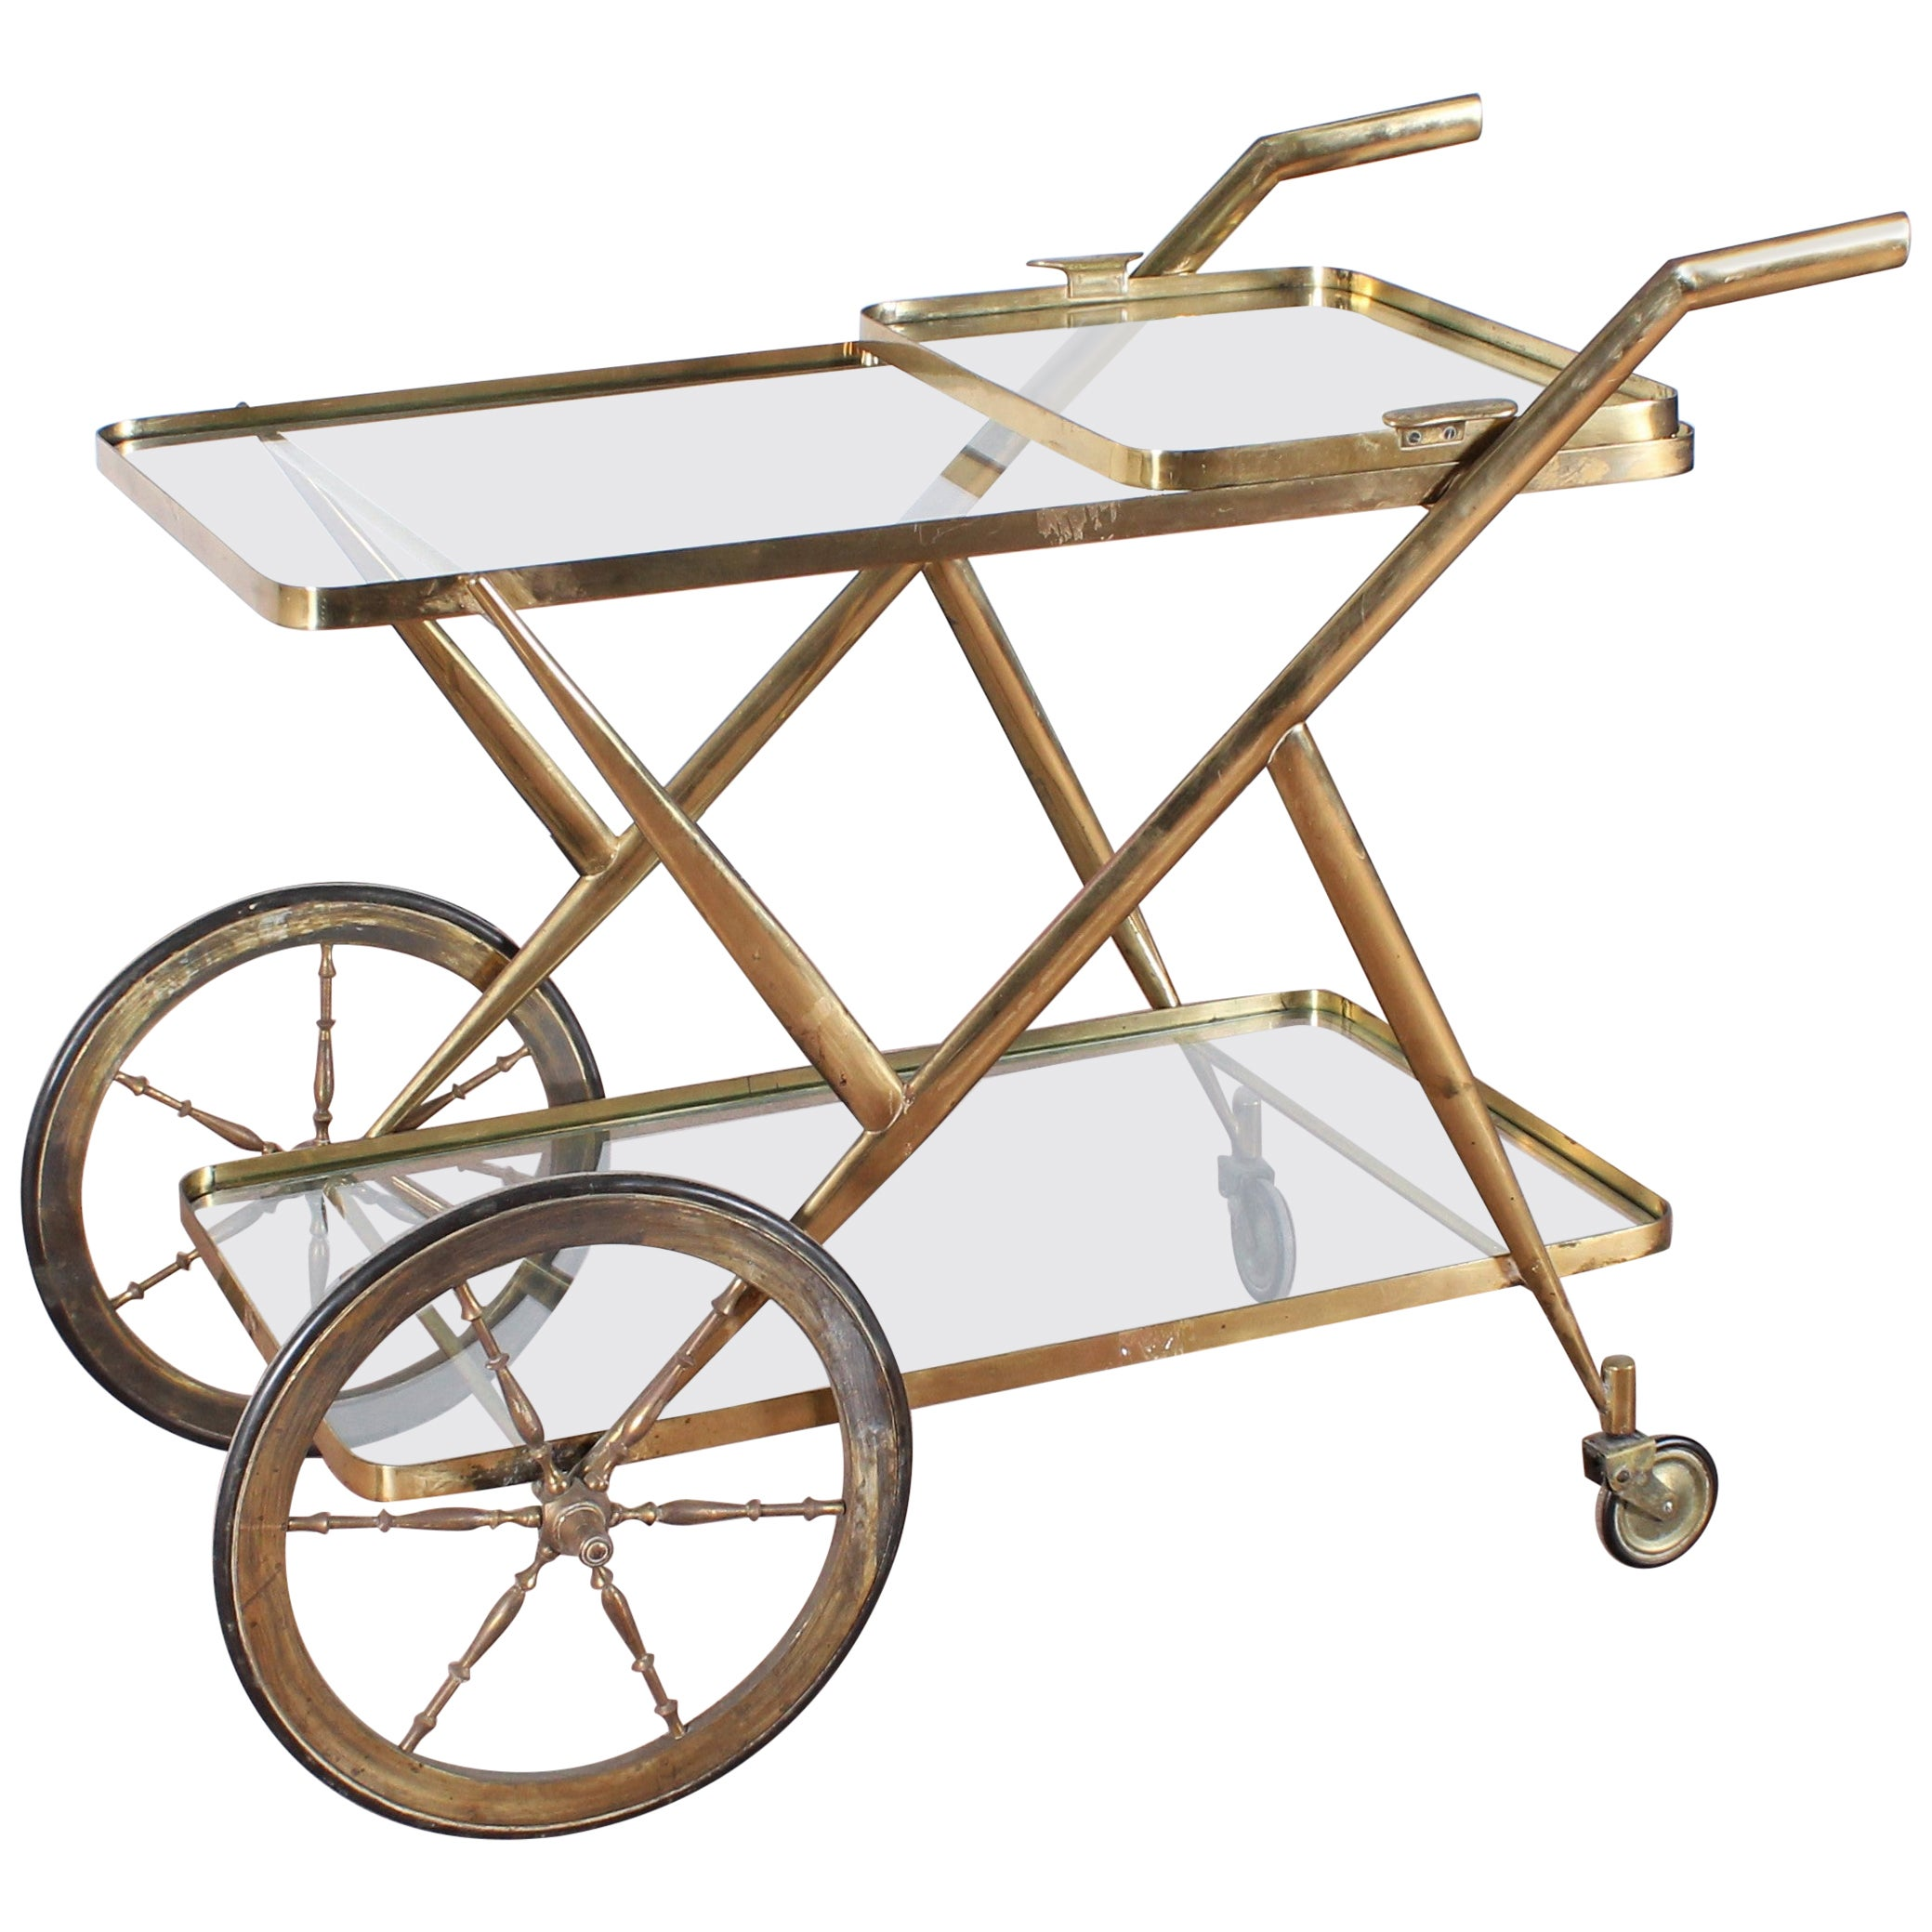 Midcentury Cesare Lacca Vintage Solid Brass Serving Bar Cart, Italy, 1950s